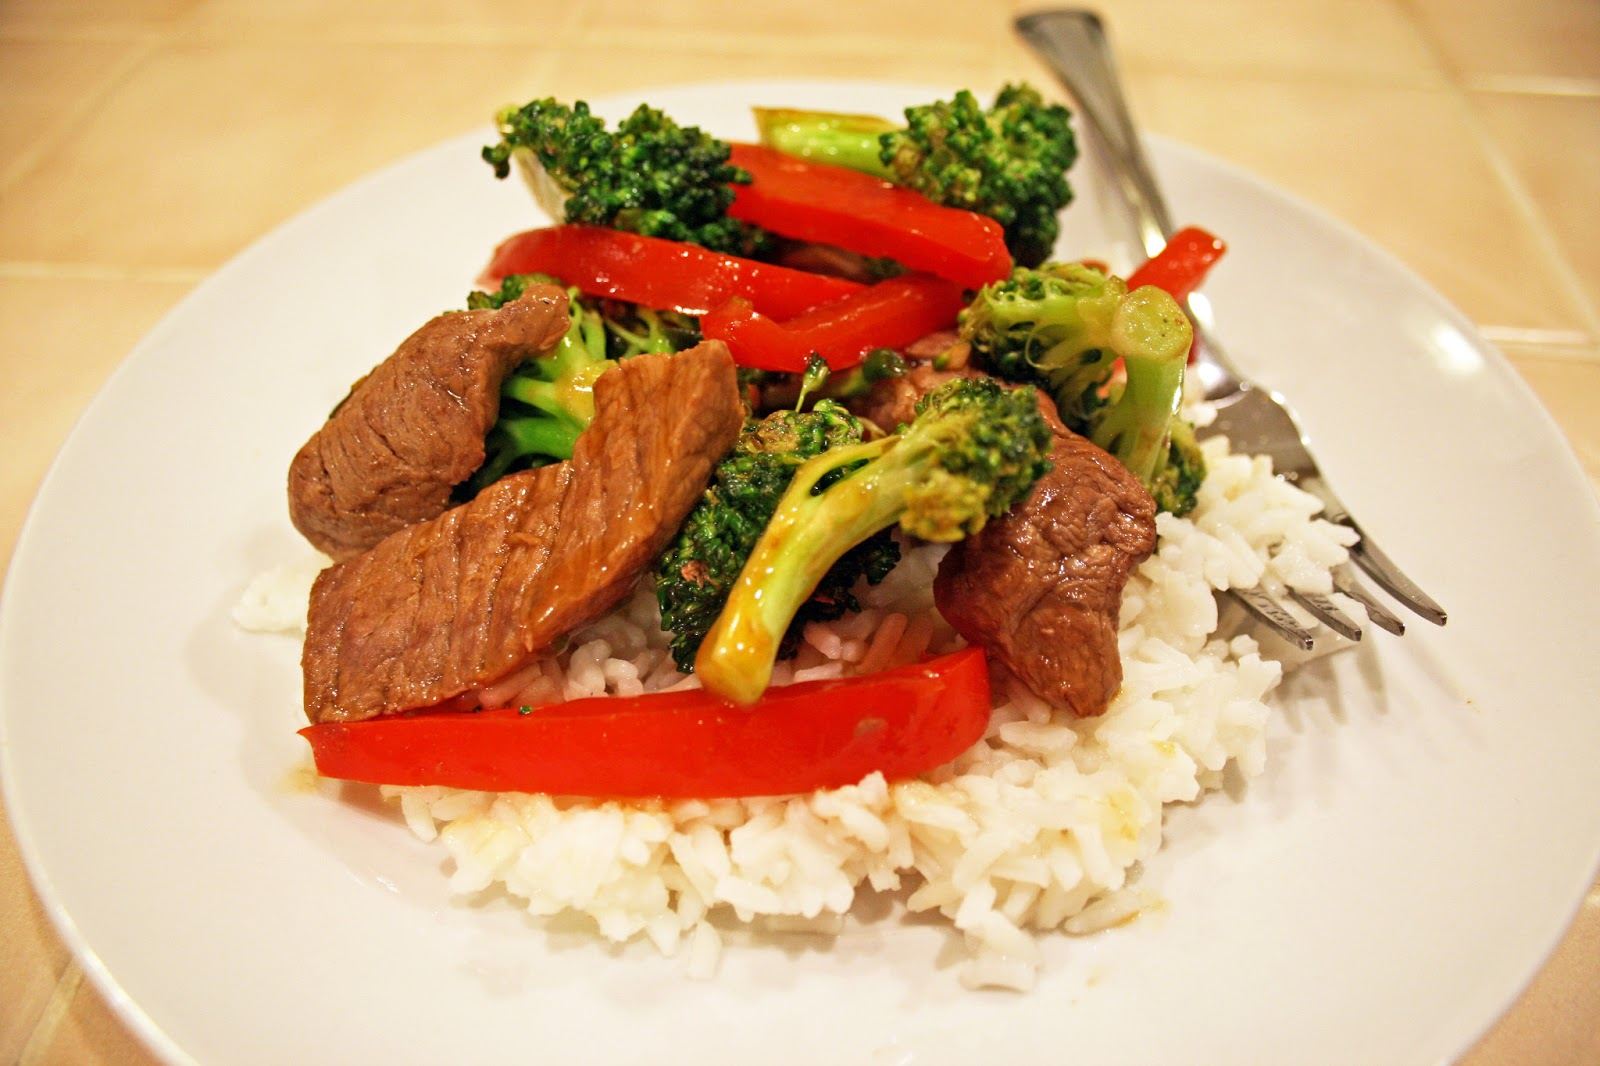 Simply Recipe's Flank Steak Stir-Fry with Asparagus and Red Pepper